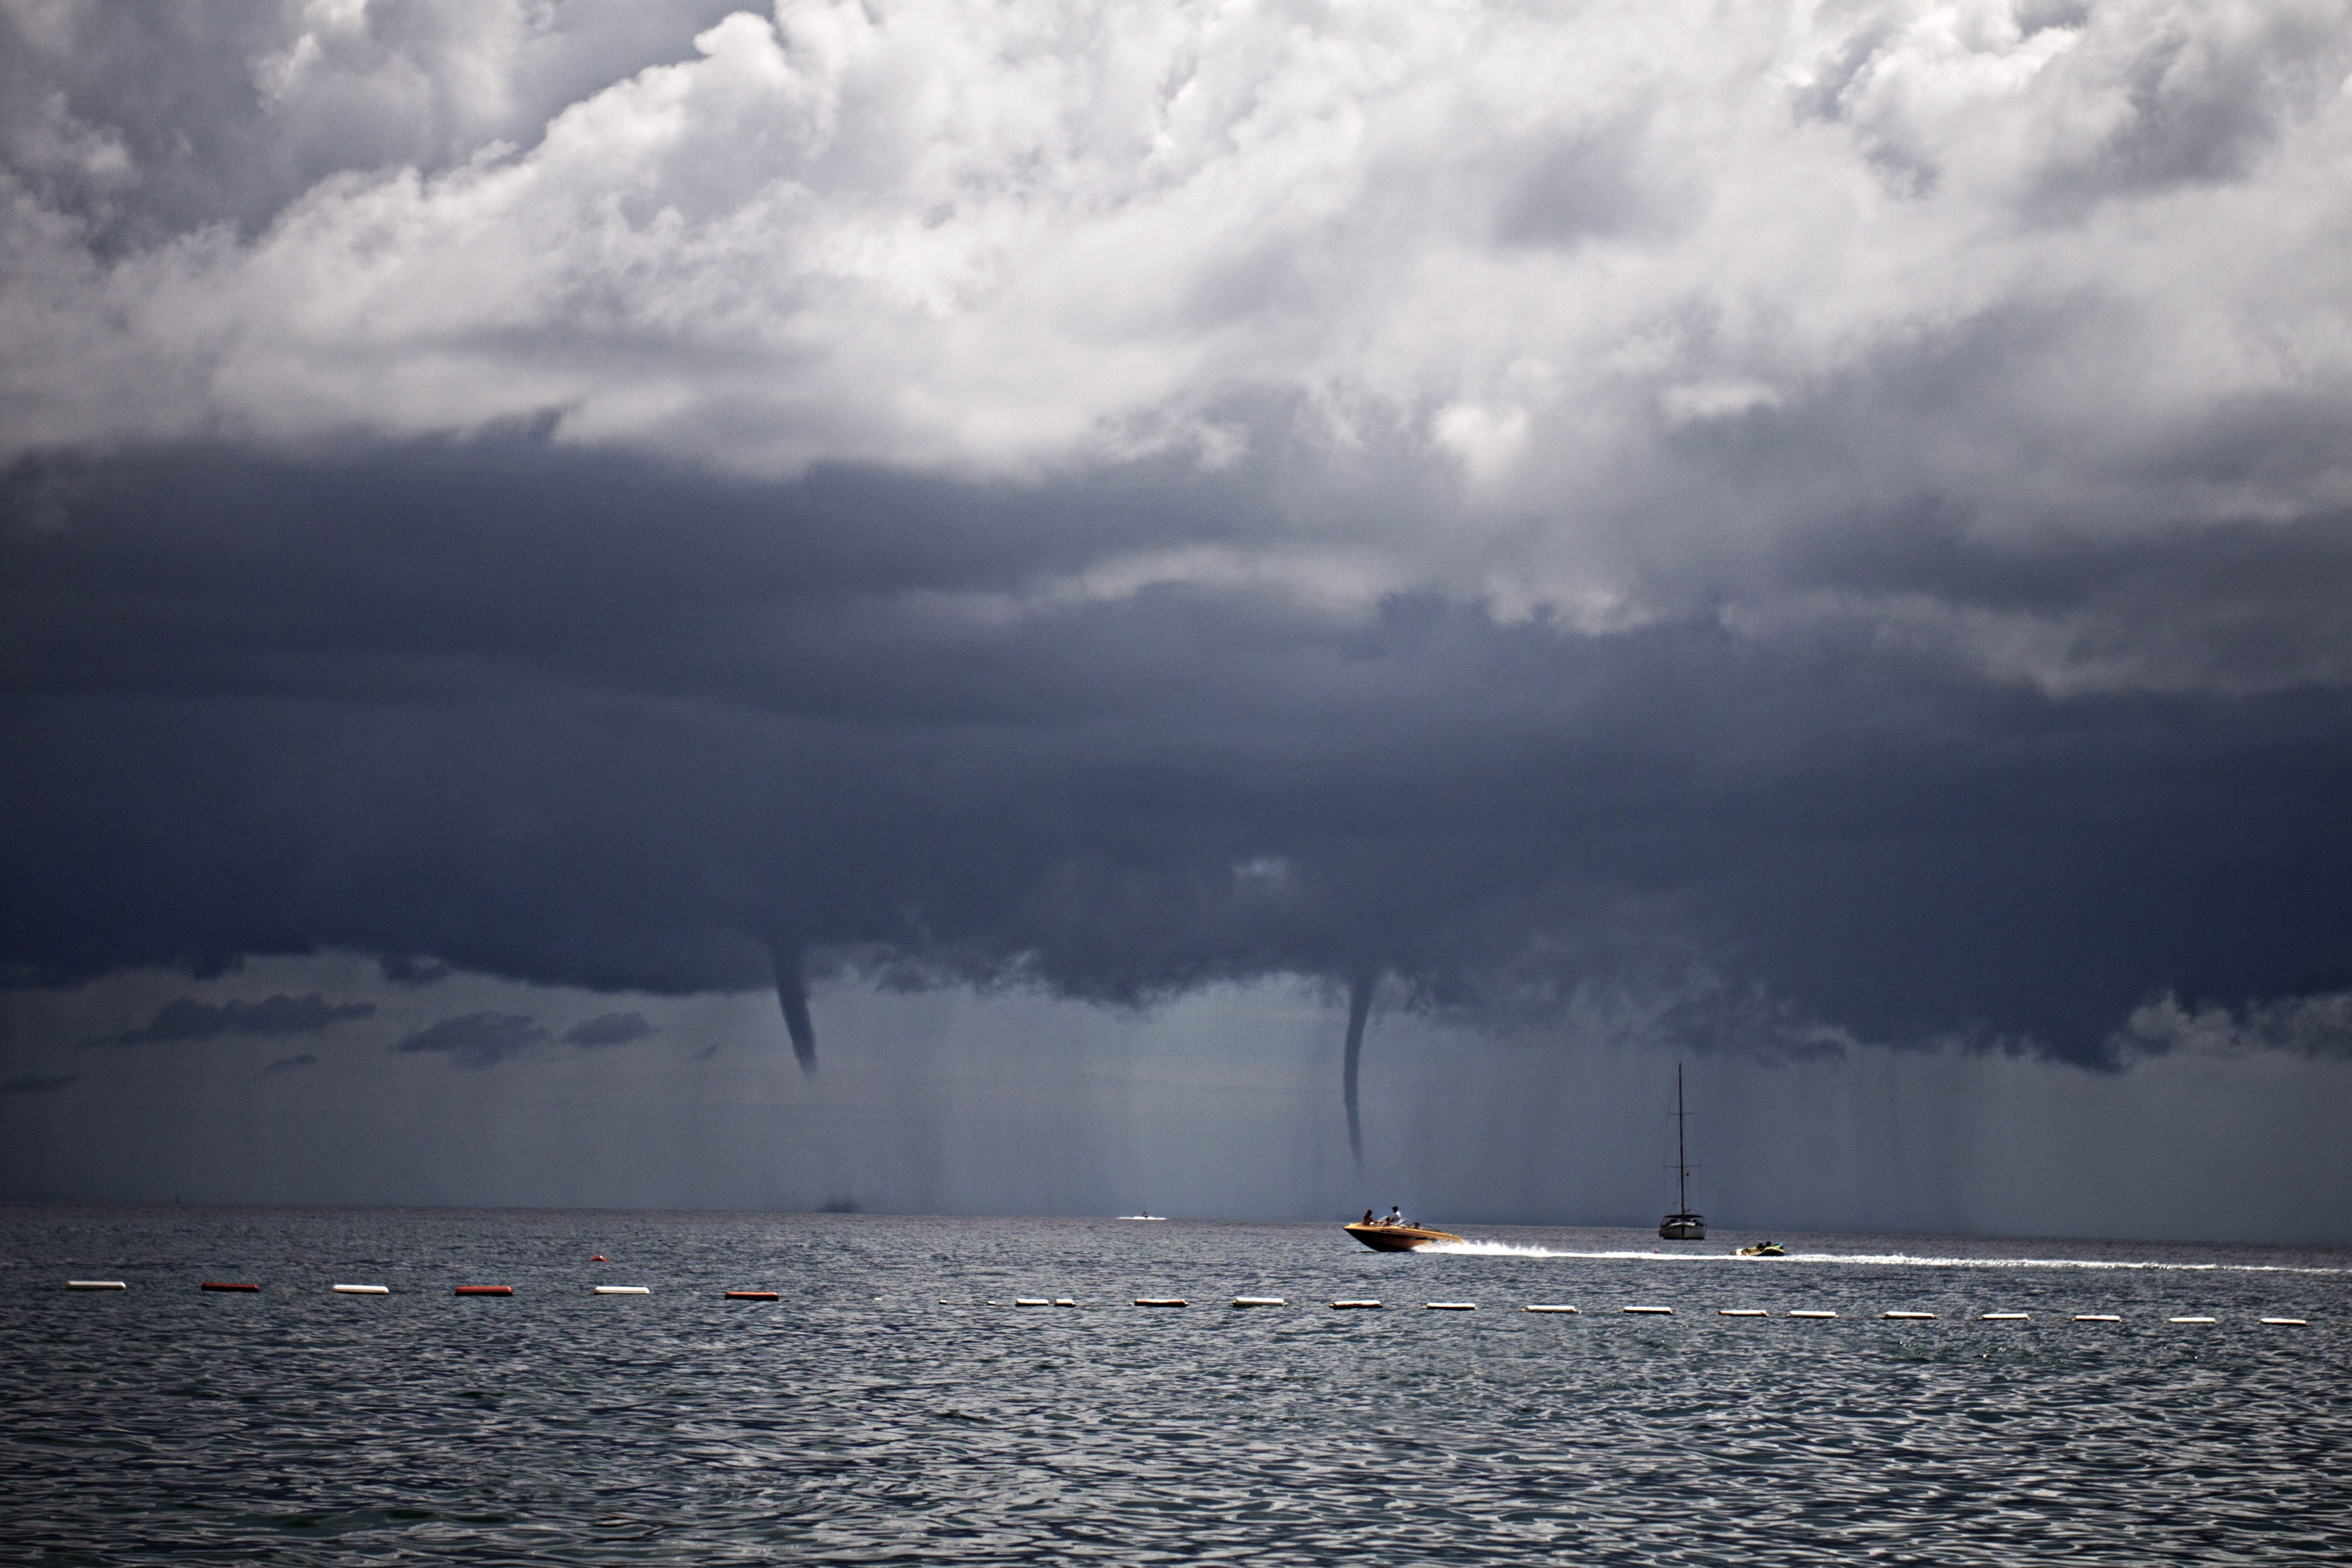 Speedboat speeding across the sea with waterspout tornadoes in the distance in Budva Municipality